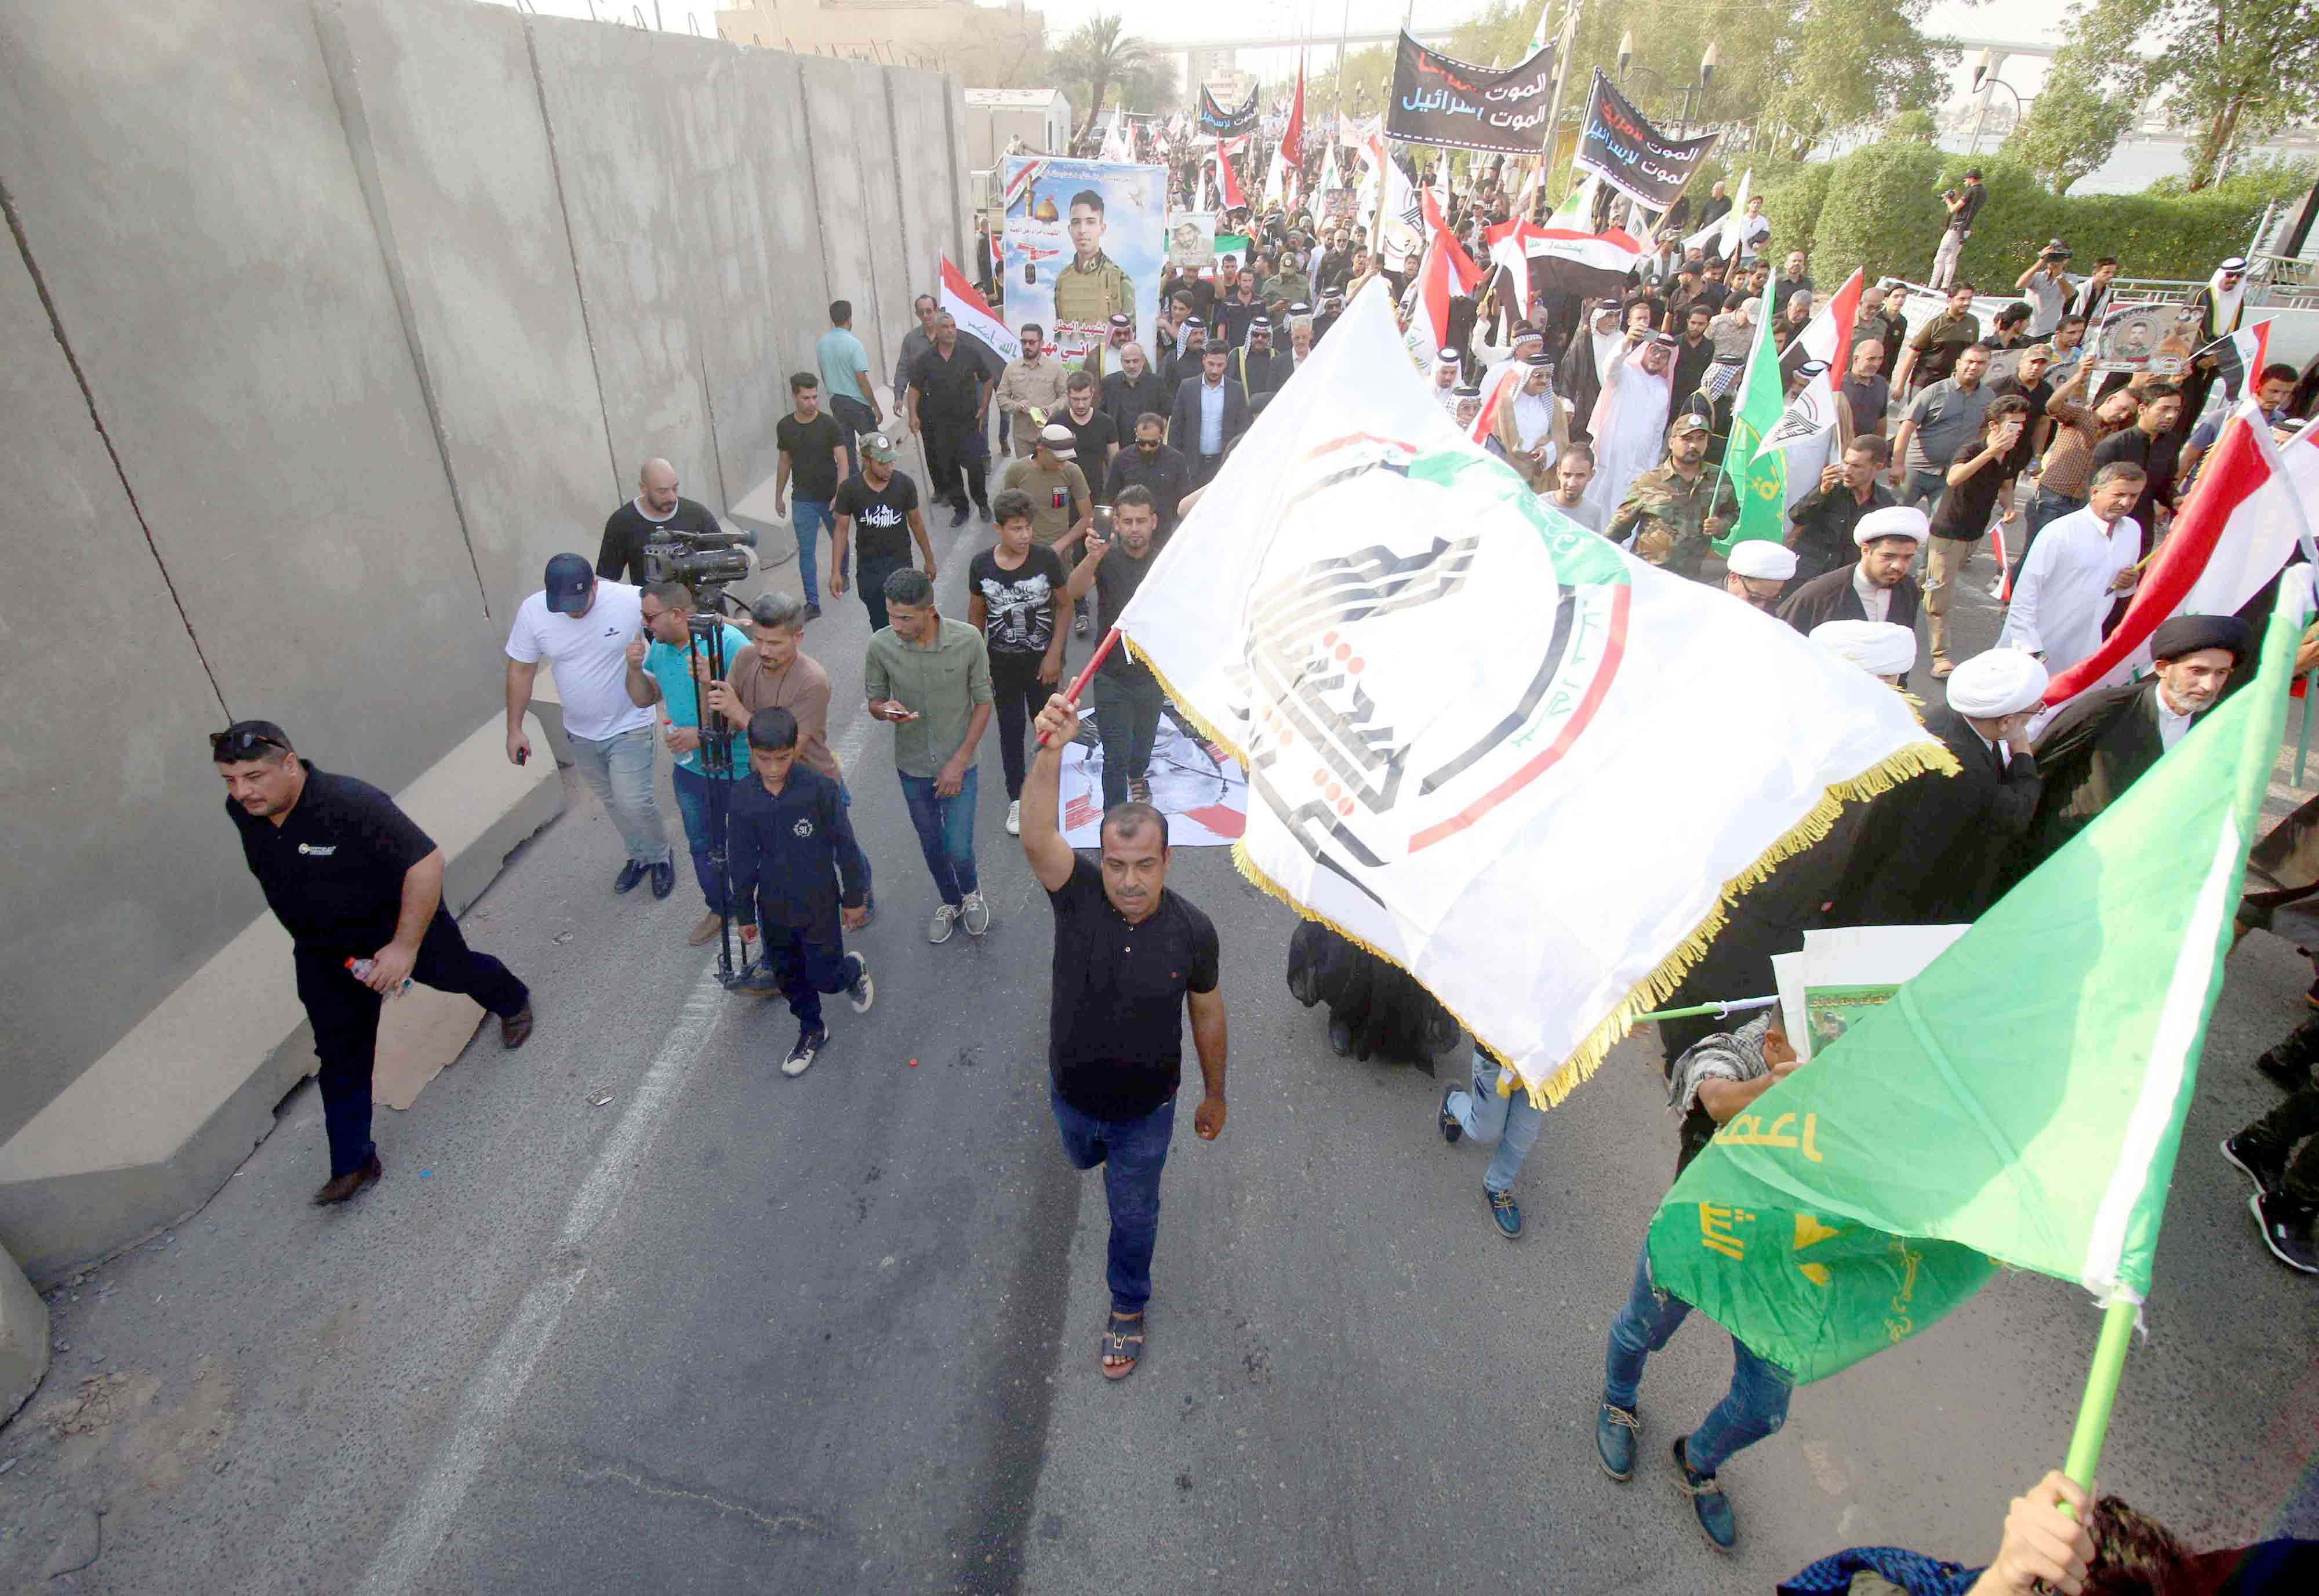 Iraqi Shia demonstrators wave Iranian and pro-Iranian party flags during a protest in Basra, on September 15. (AFP)